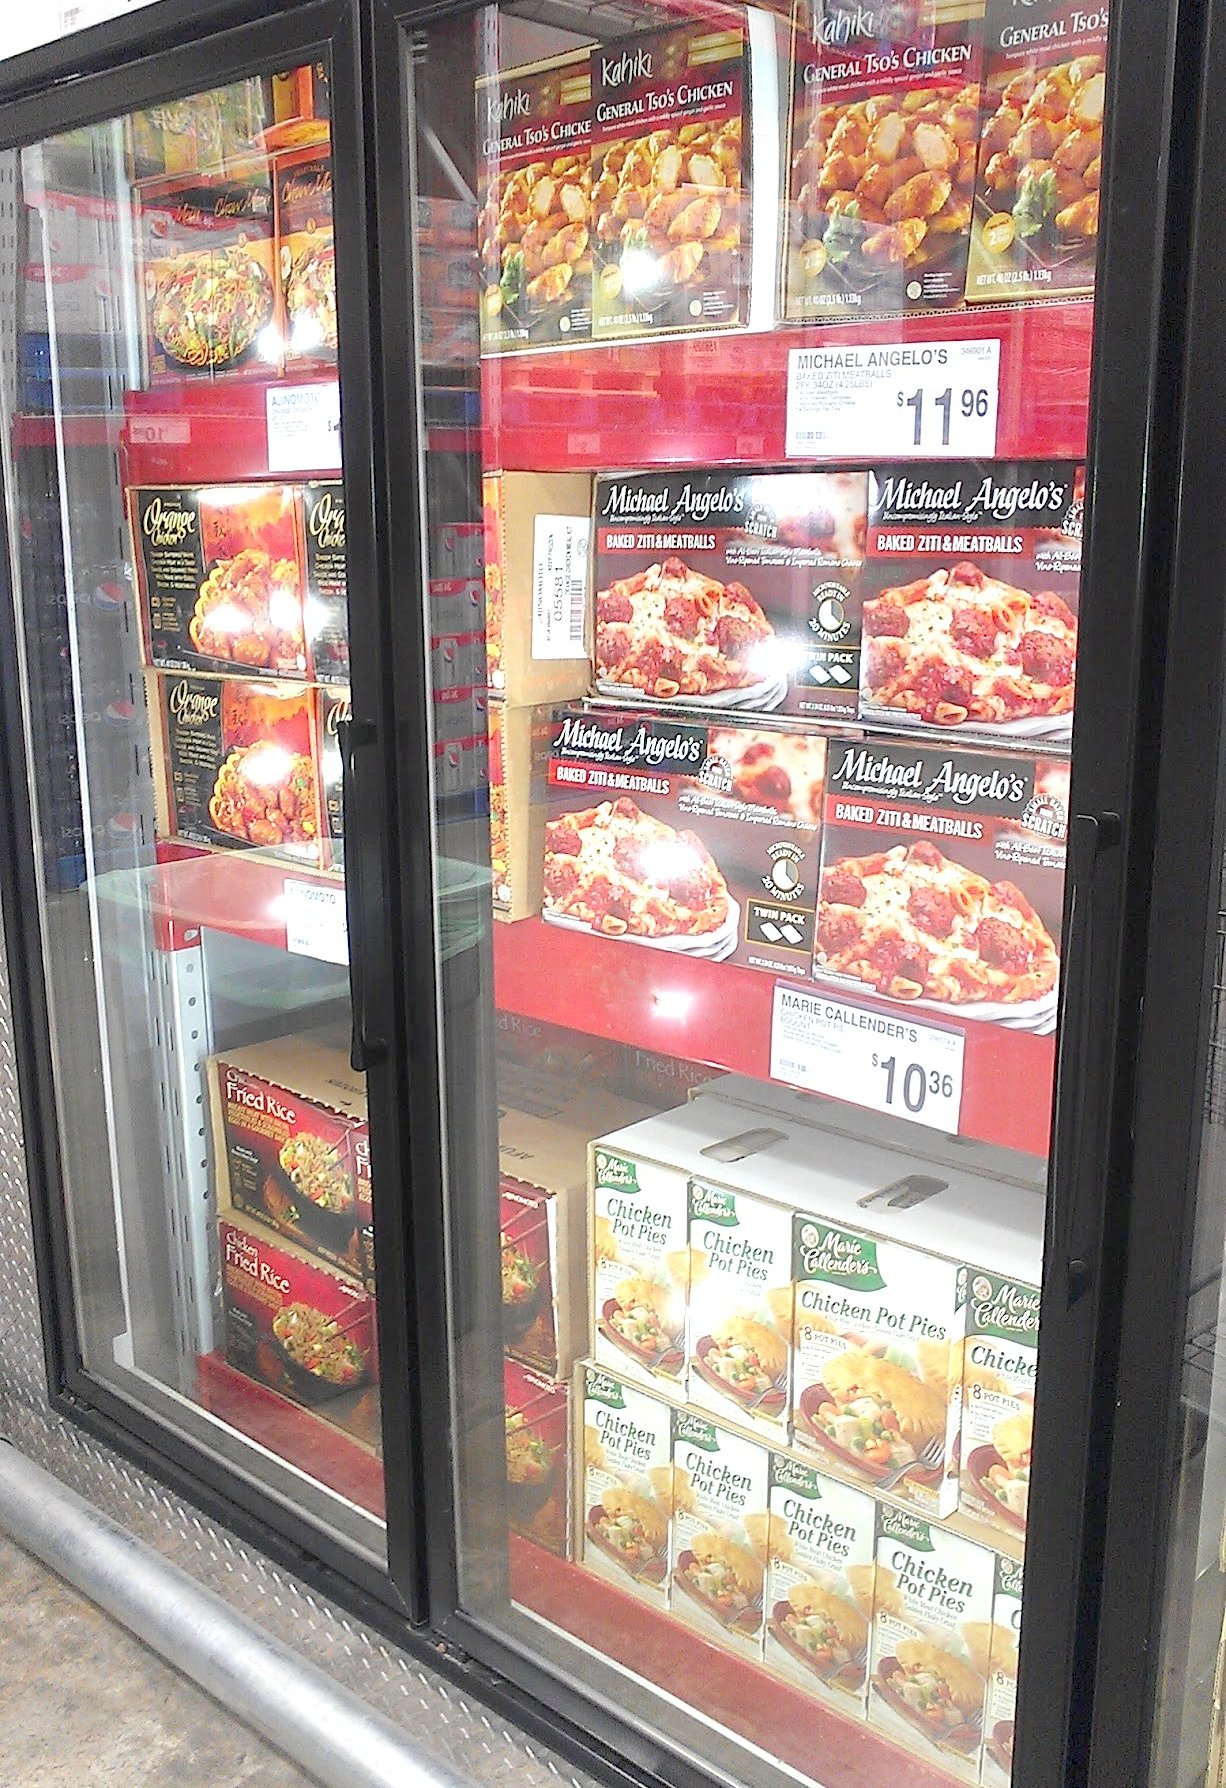 Photo: When I got to the frozen foods aisle in Sam's Club, I found lots of large meals for families. This might be a good place for Hubby and I to stock up at the beginning of the month when I get paid. There were so many choices from chicken, lasagna, spaghetti and pot pies.